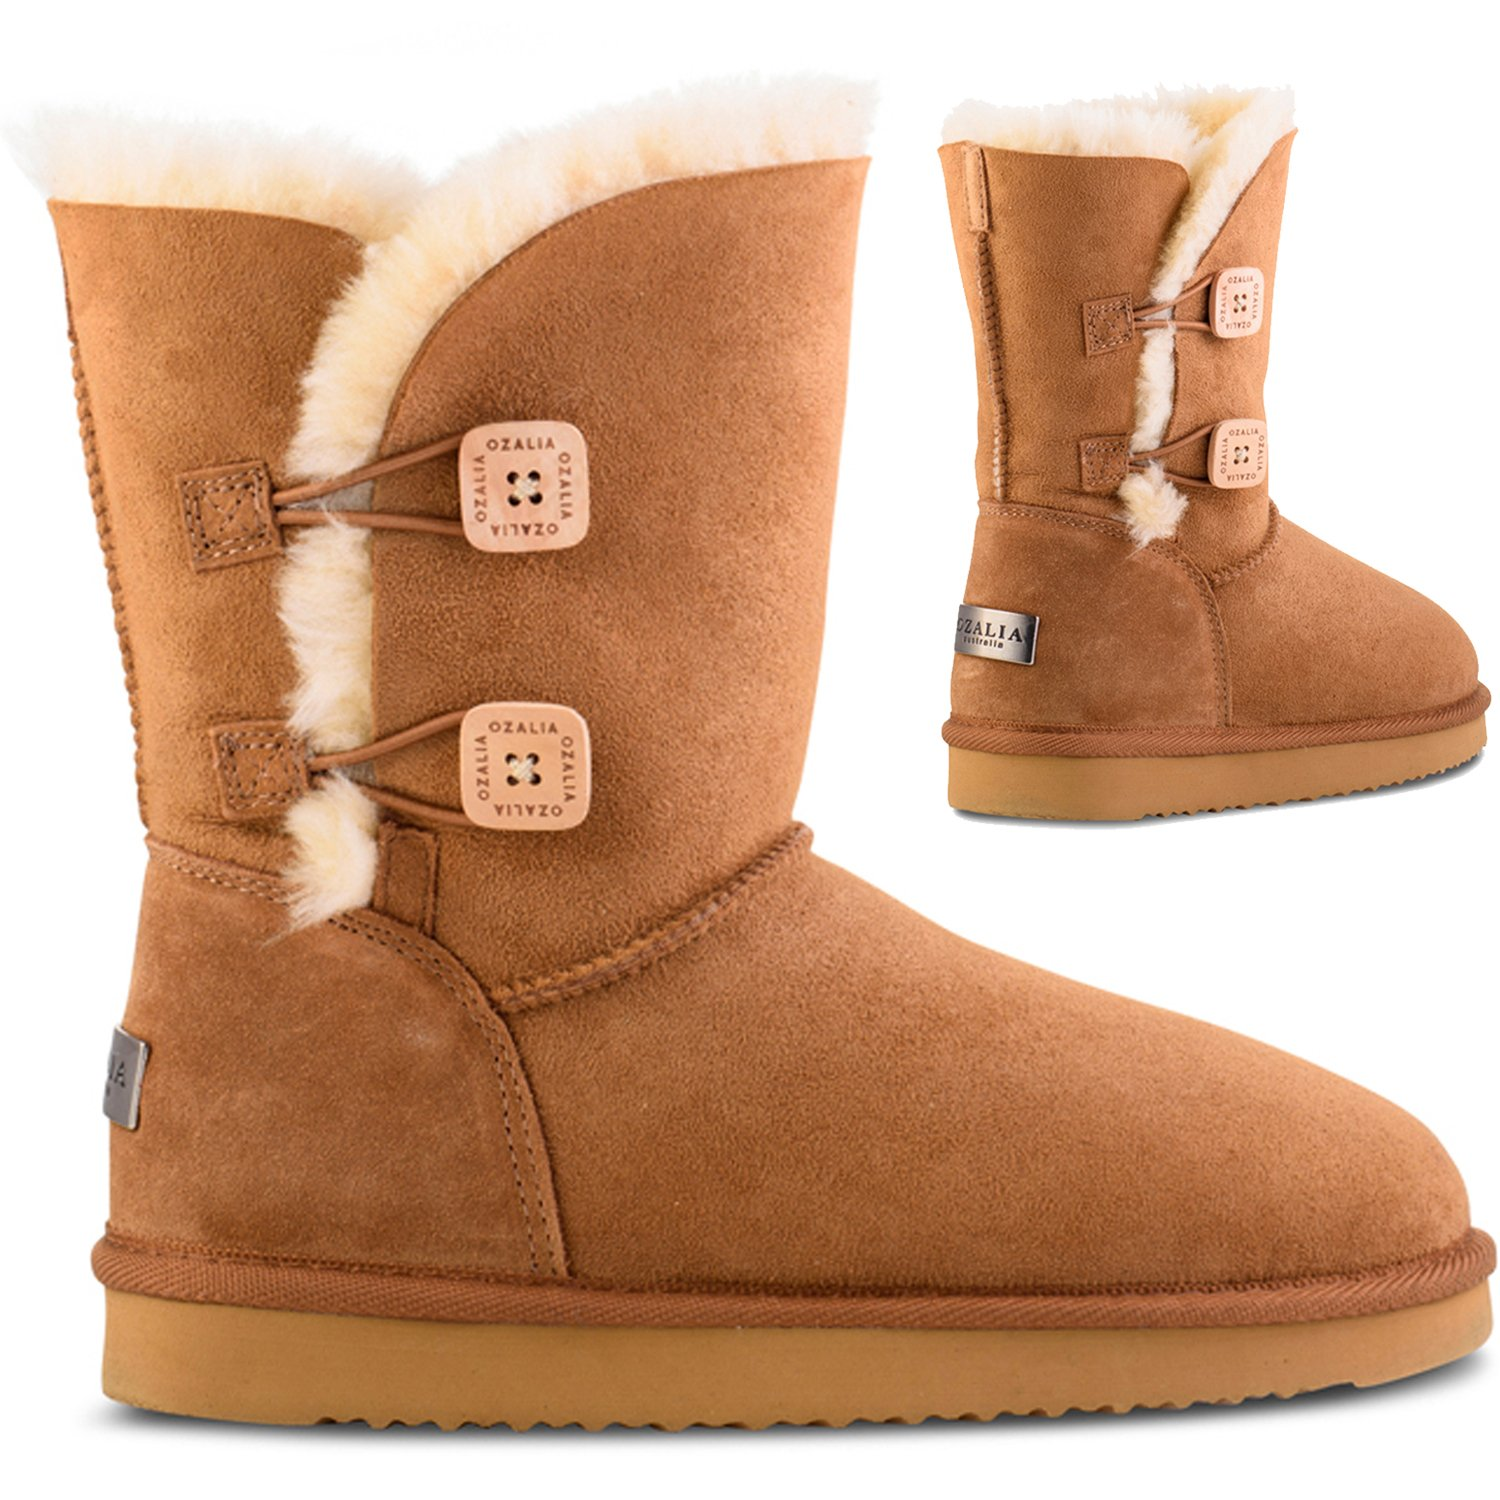 OZALIA Snow Boots Women Twin Button - Leather Winter Boots For Ladies - Australian Sheepskin Mid Calf Boots To Warm Your Feet All Winter